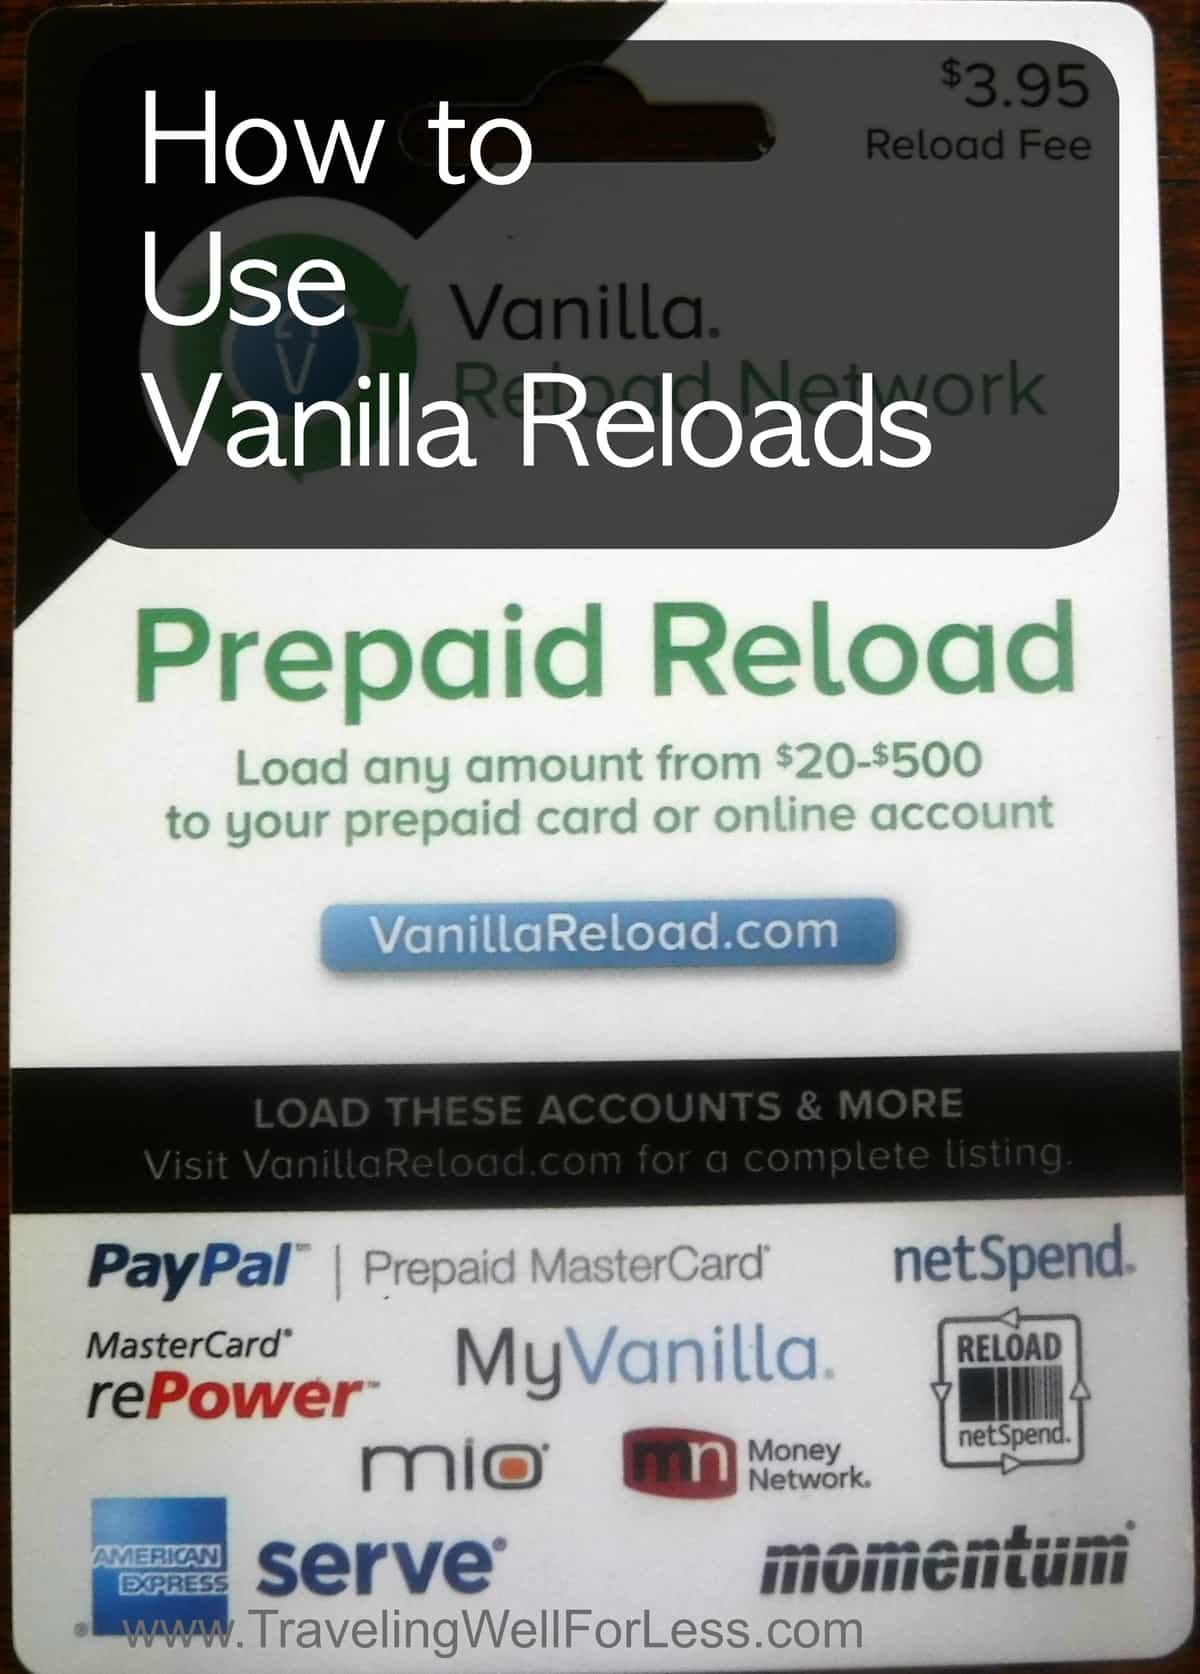 How to Use Vanilla Reloads